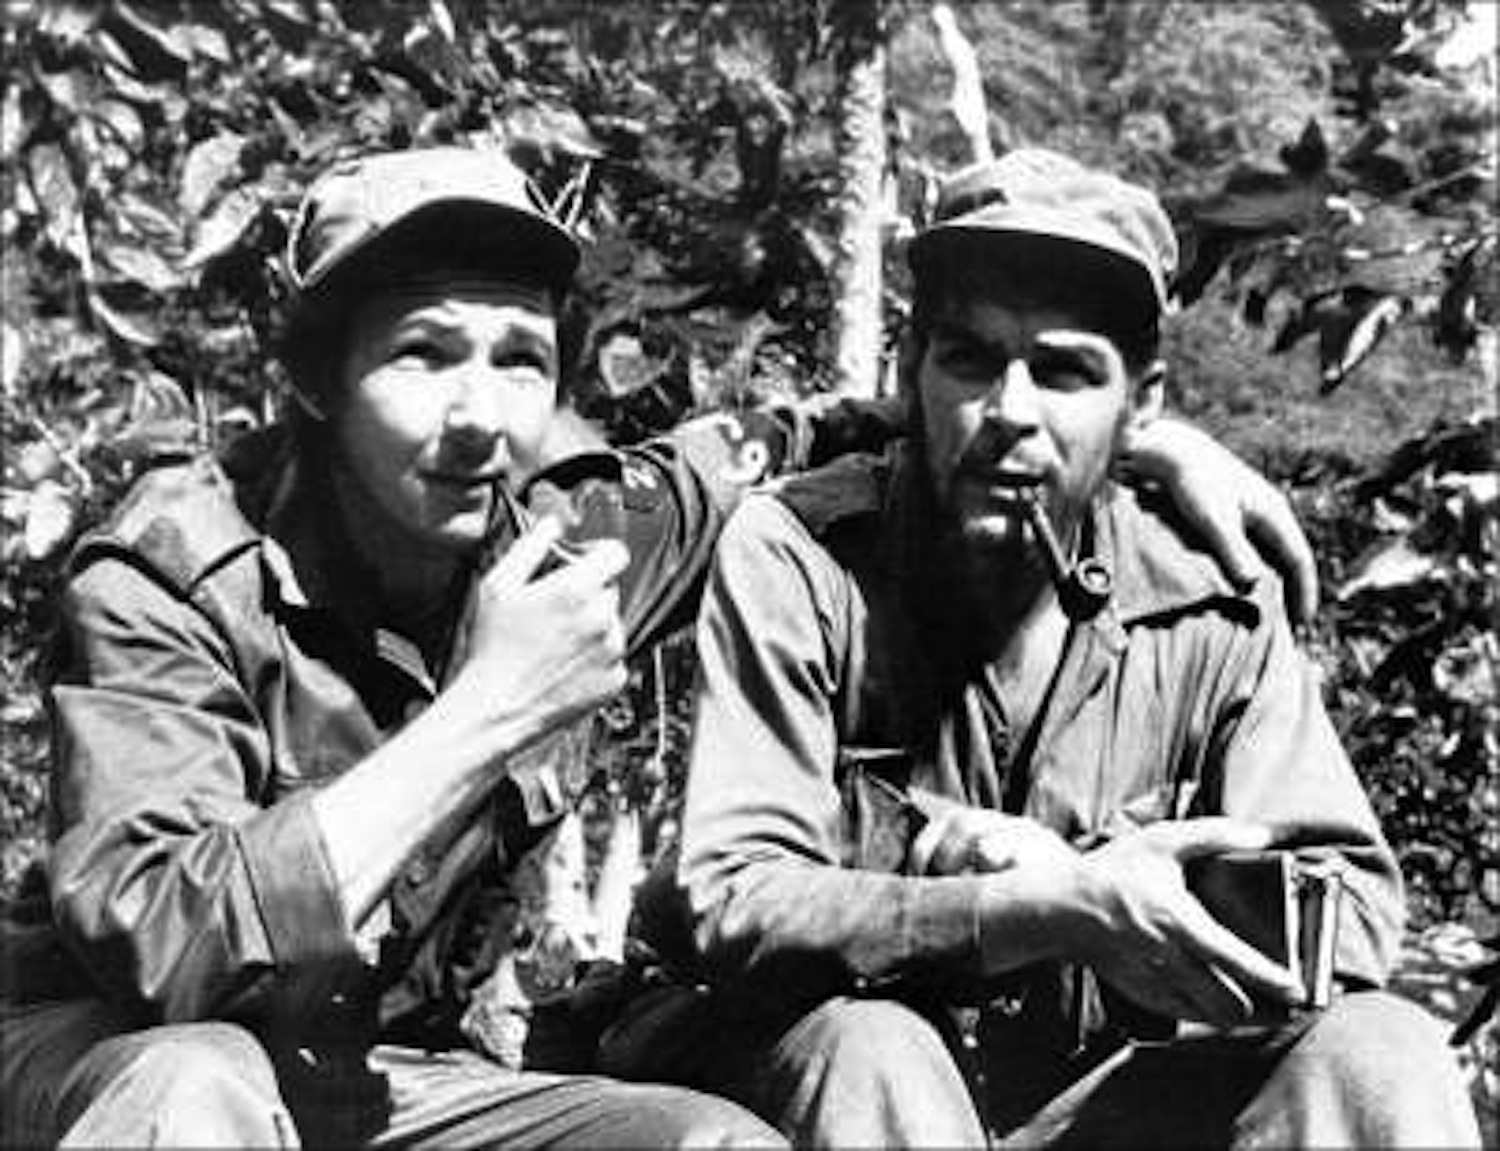 """Raúl Castro (left), with his arm around second-in-command, Ernesto """"Che"""" Guevara, in their Sierra de Cristal mountain stronghold in Oriente Province, Cuba, 1958"""